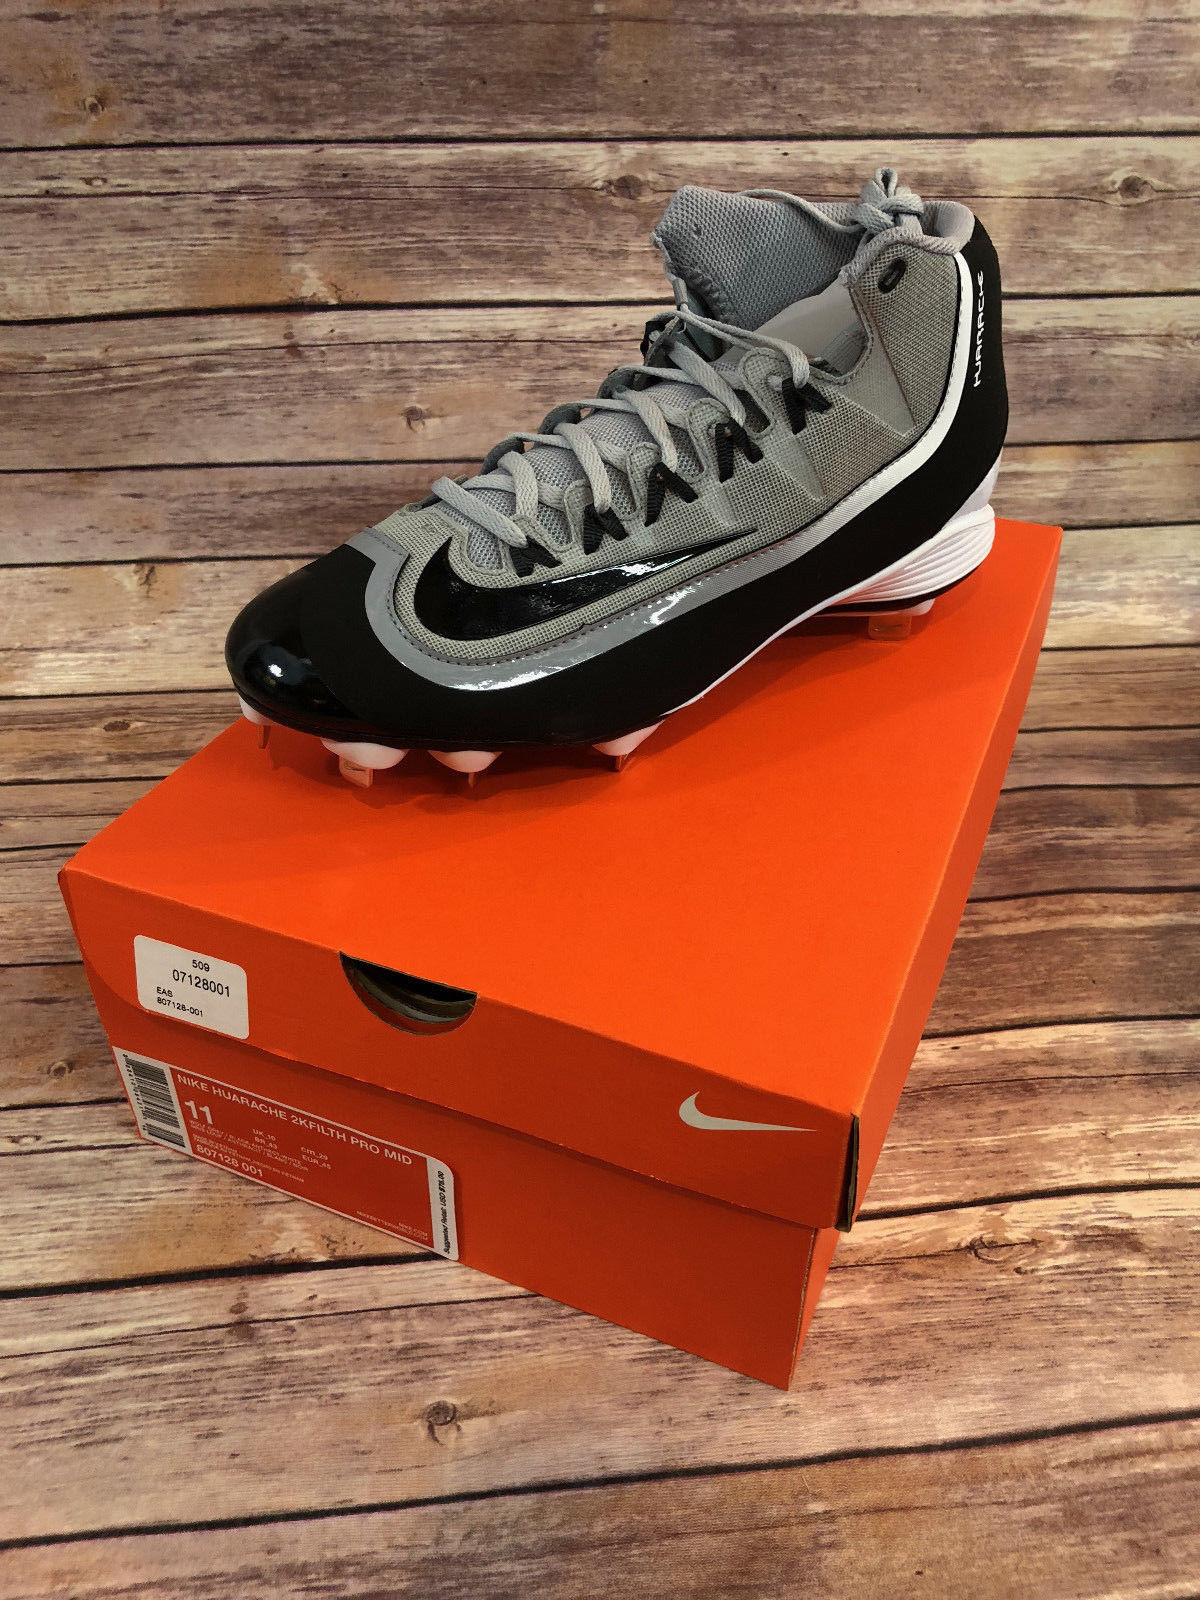 promo code af560 3afc7 Nike Huarache 2KFilth Pro Baseball Cleats and 11 similar items. 57